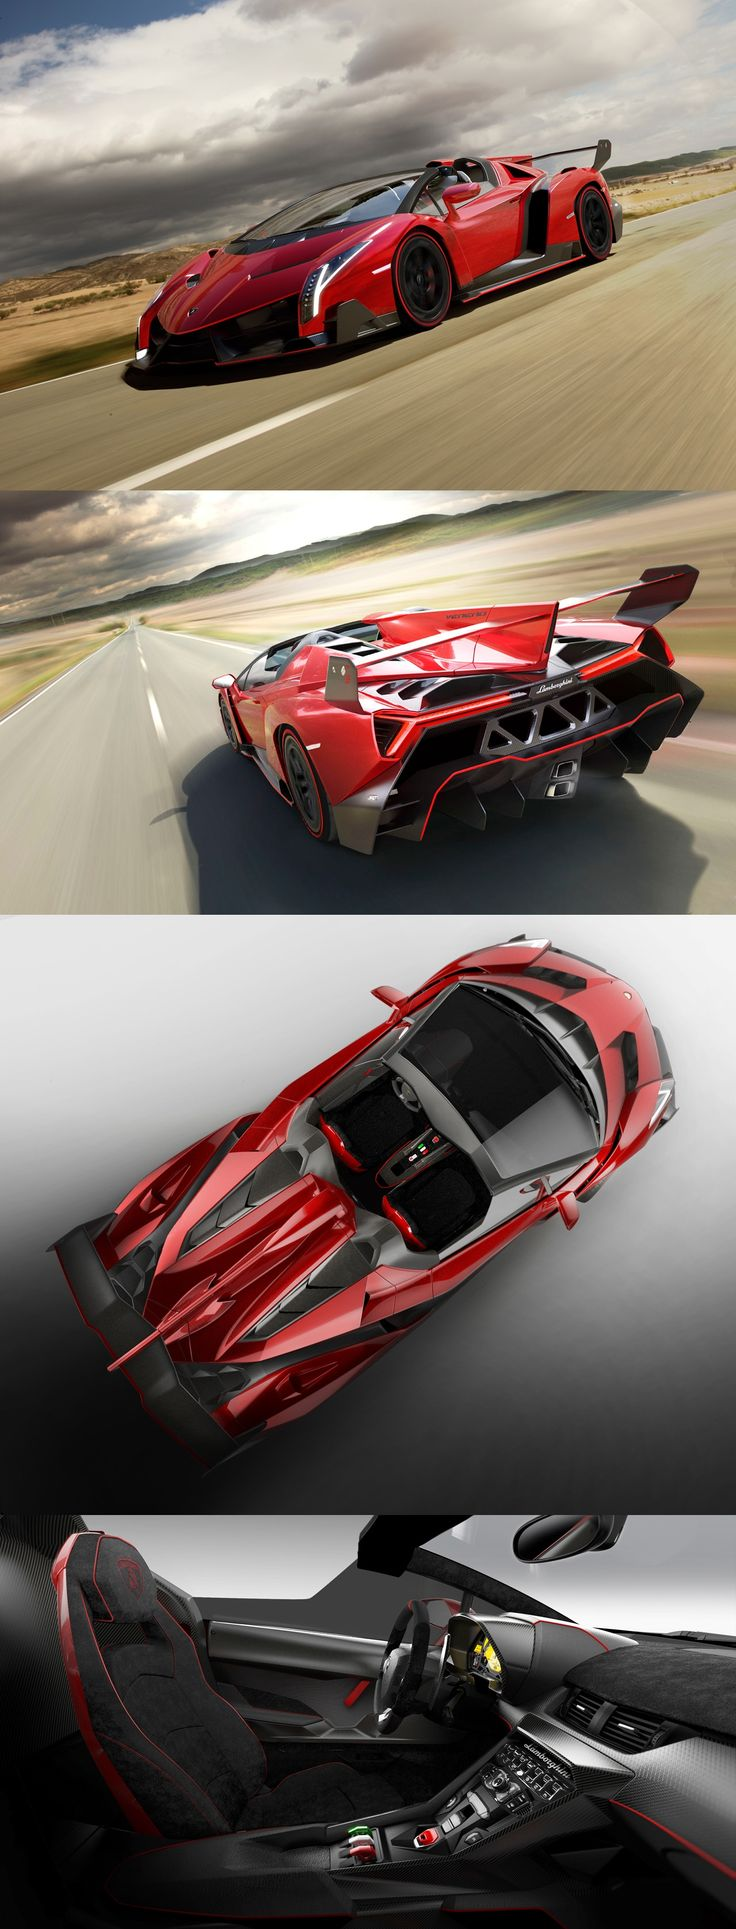 $4.6 Million Lamborghini Veneno Roadster. Only 3 were made in the world!